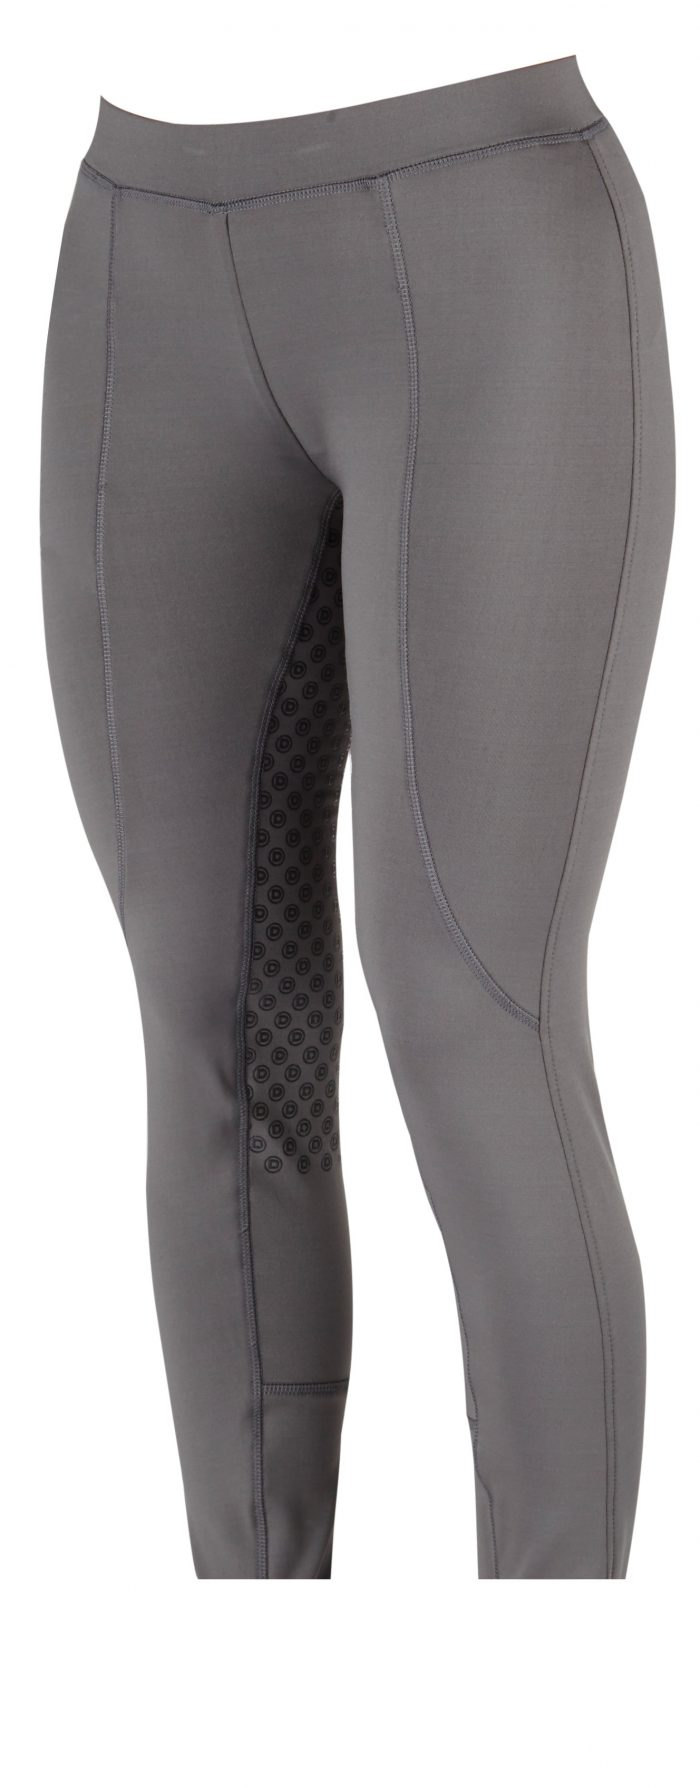 Dublin Cool-It Gel Riding Tights